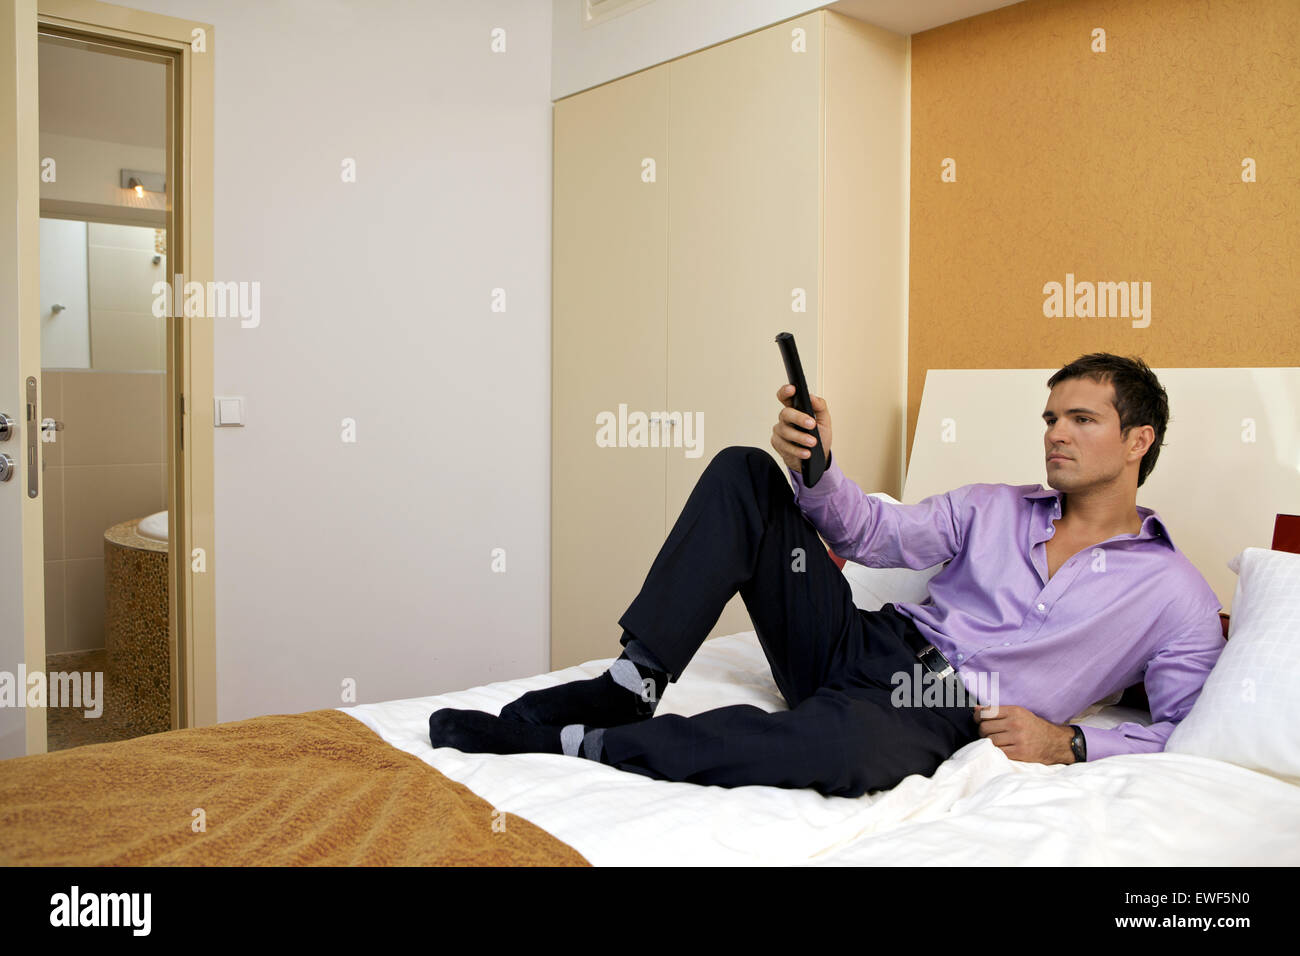 Man on bed with remote control - Stock Image